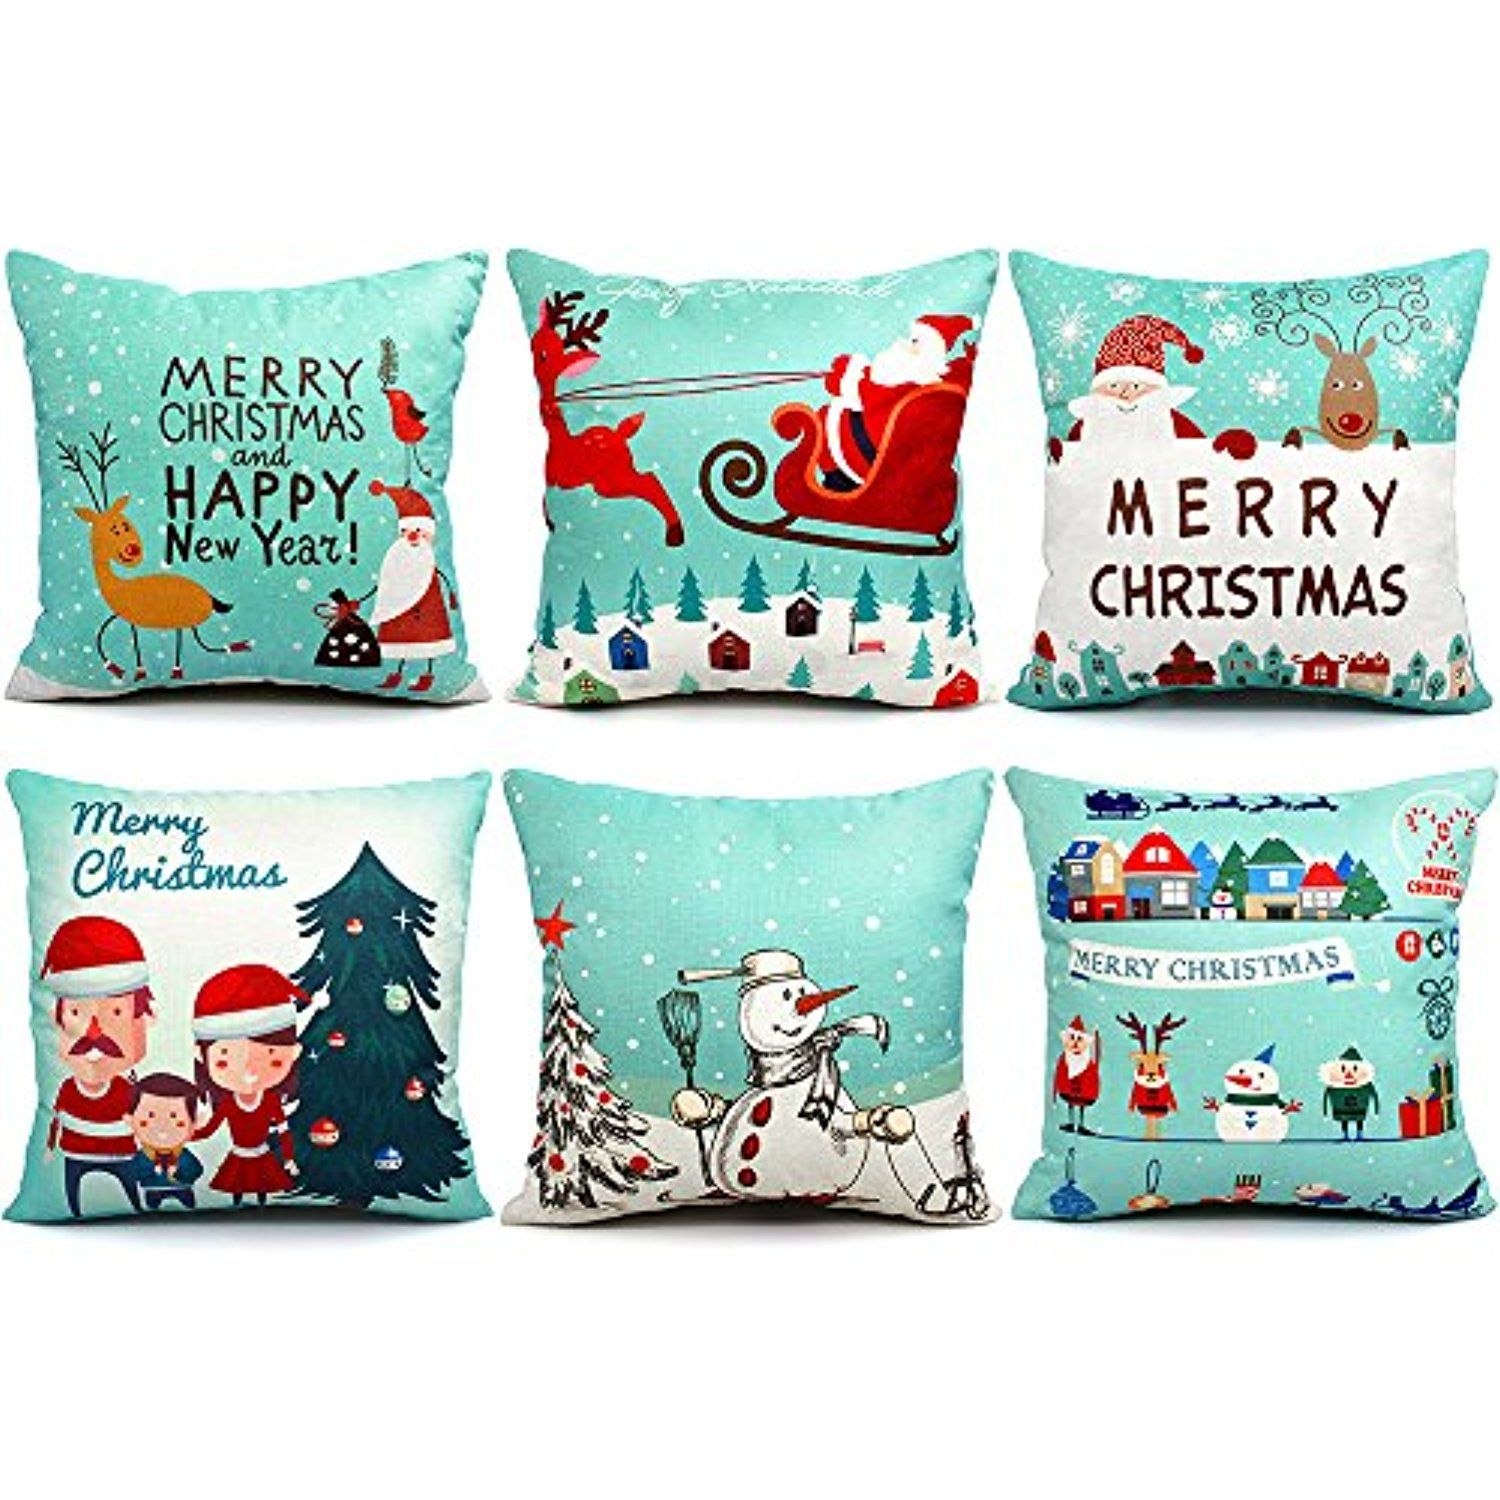 Throw Pillow Cover Colorful Kids Happy Birthday Pattern Party Decorative Pillow Case Home Decor Square 18 x 18 Pillowcase